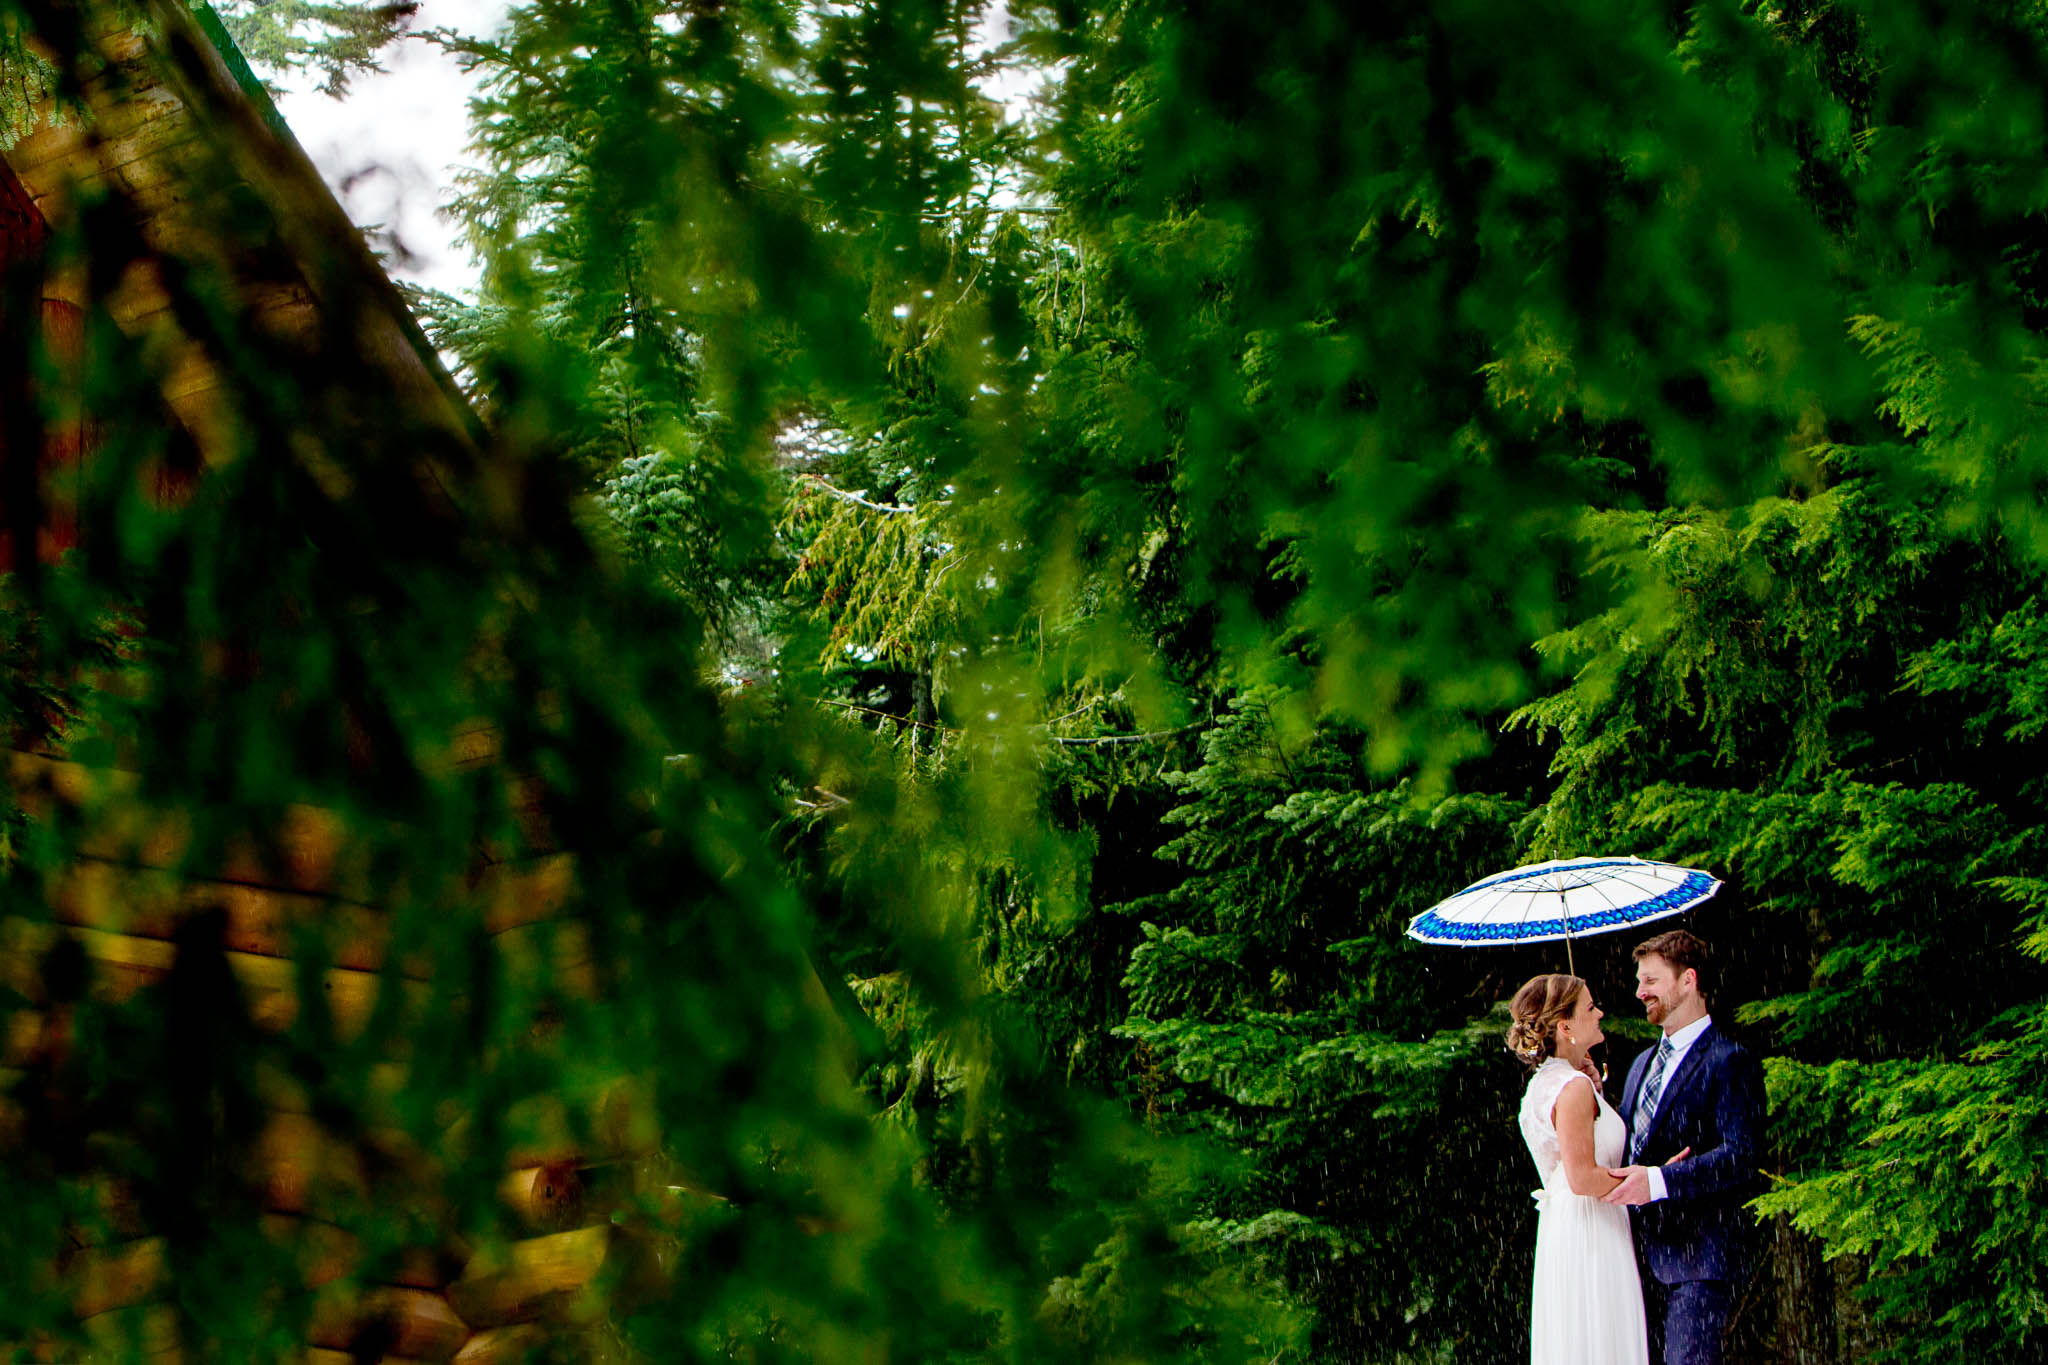 Bride seeing groom first time for their Timberline Wedding at Silcox Hut